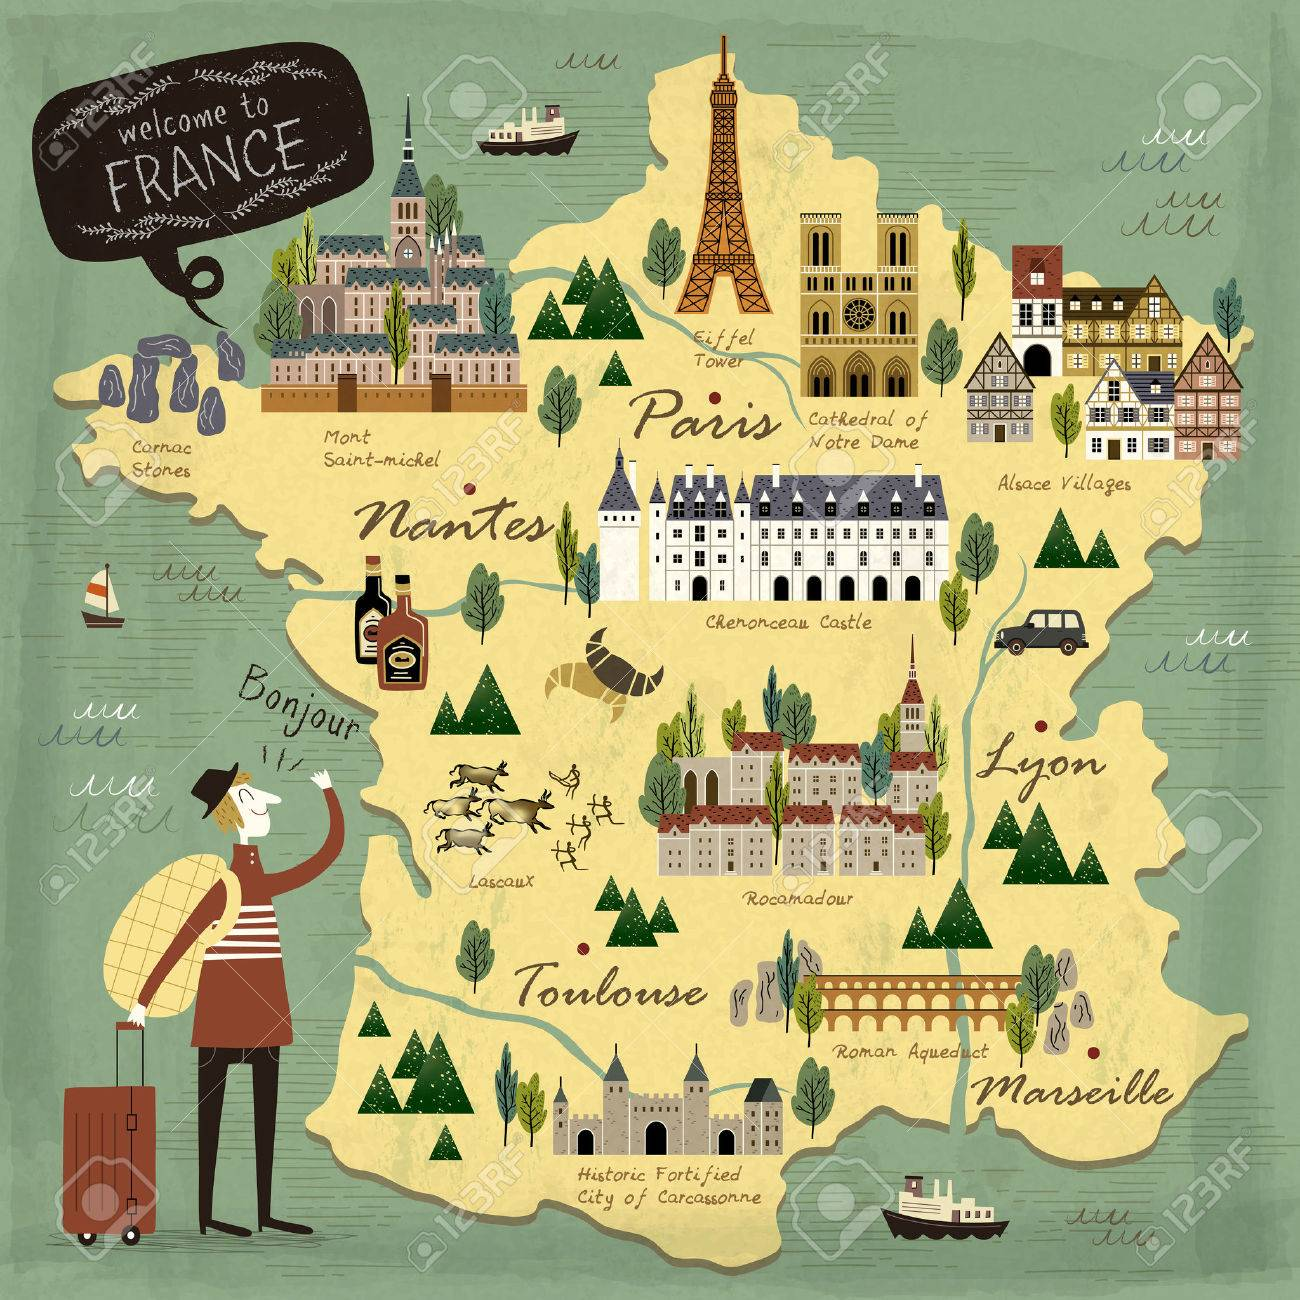 France travel concept illustration map with attractions - 51191763